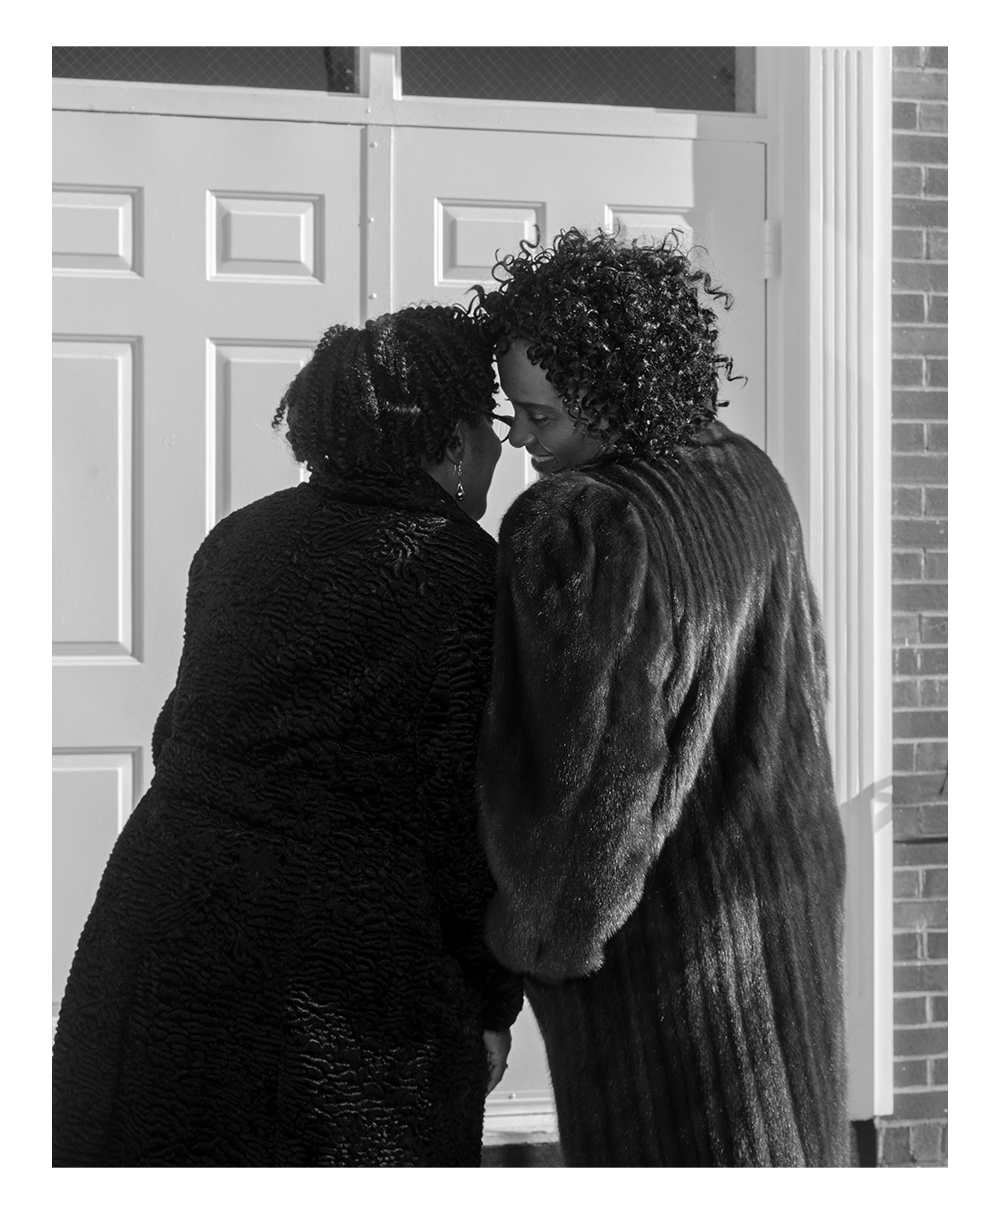 Two Black femmes with shortish curly hair wearing fur coats, pressing up against each other and smiling. We are viewing them from the back, but we can see one femme turning to say something in the other's dangly-earring'ed ear, smiling. In the background is a large wooden door they are standing in front of.